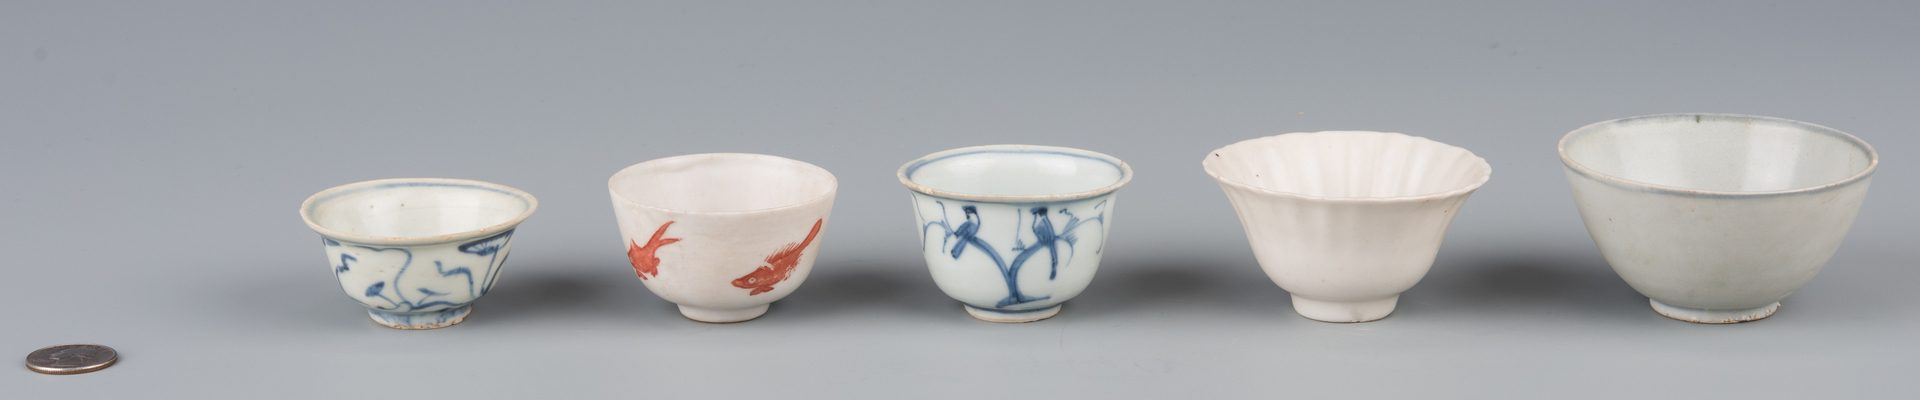 Lot 584: 5 Asian Cups inc. Carp